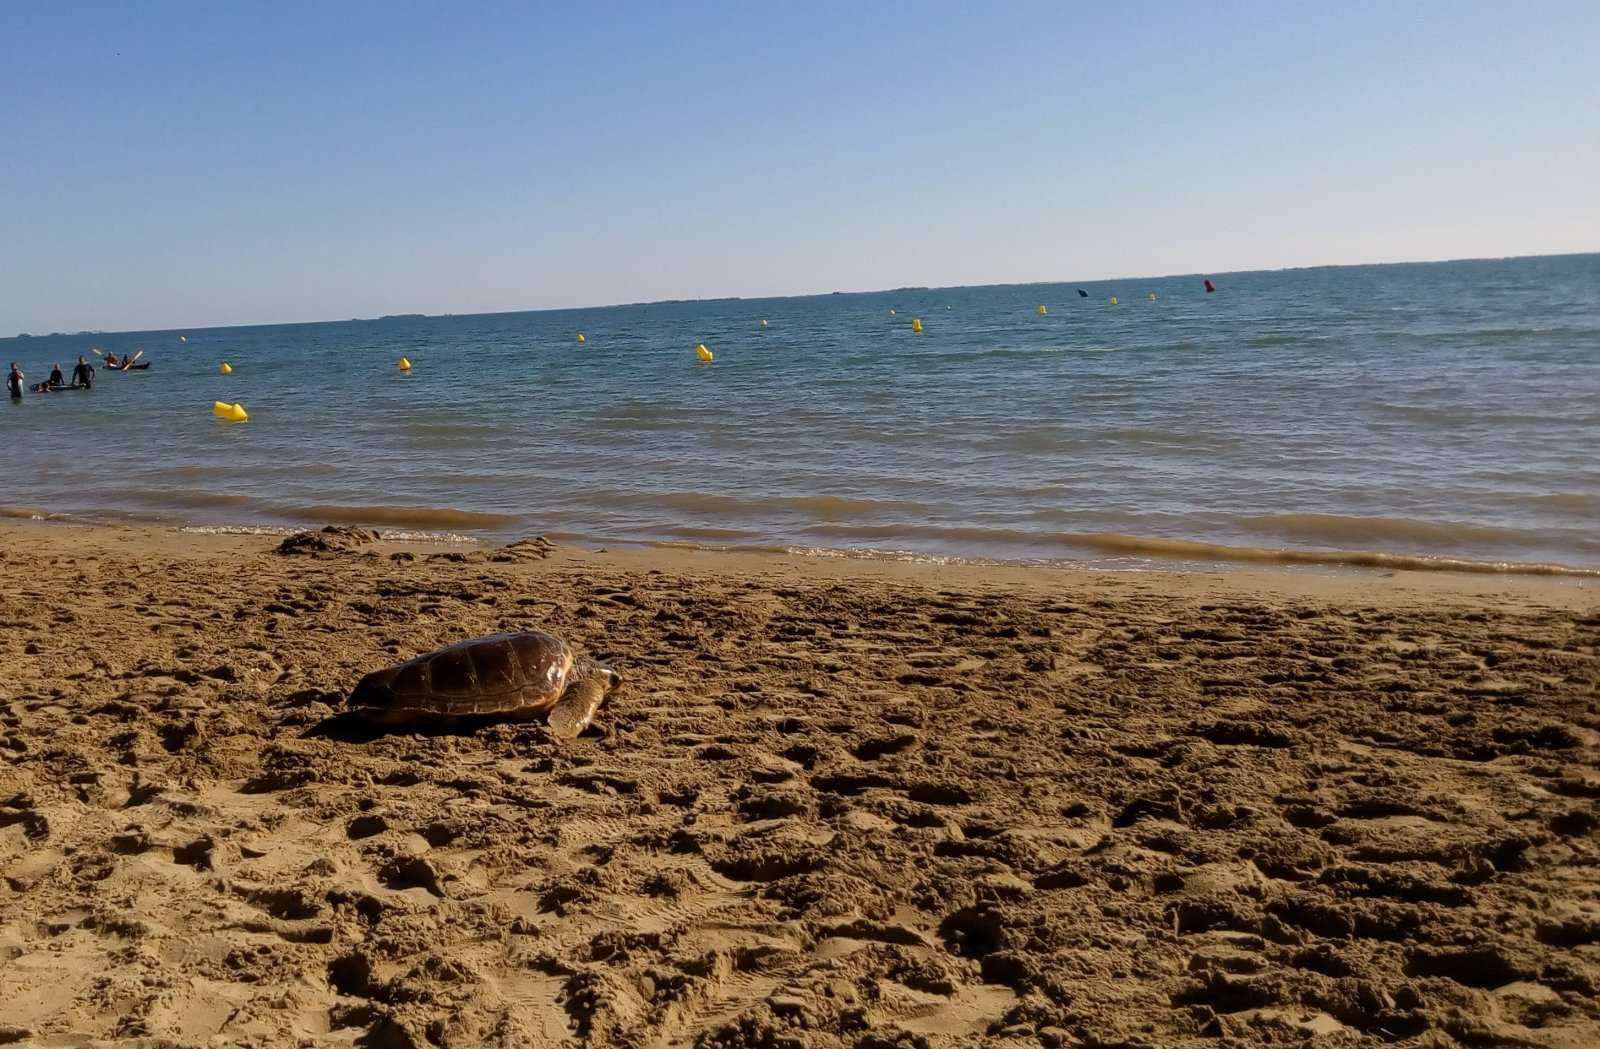 Tortugues babaues